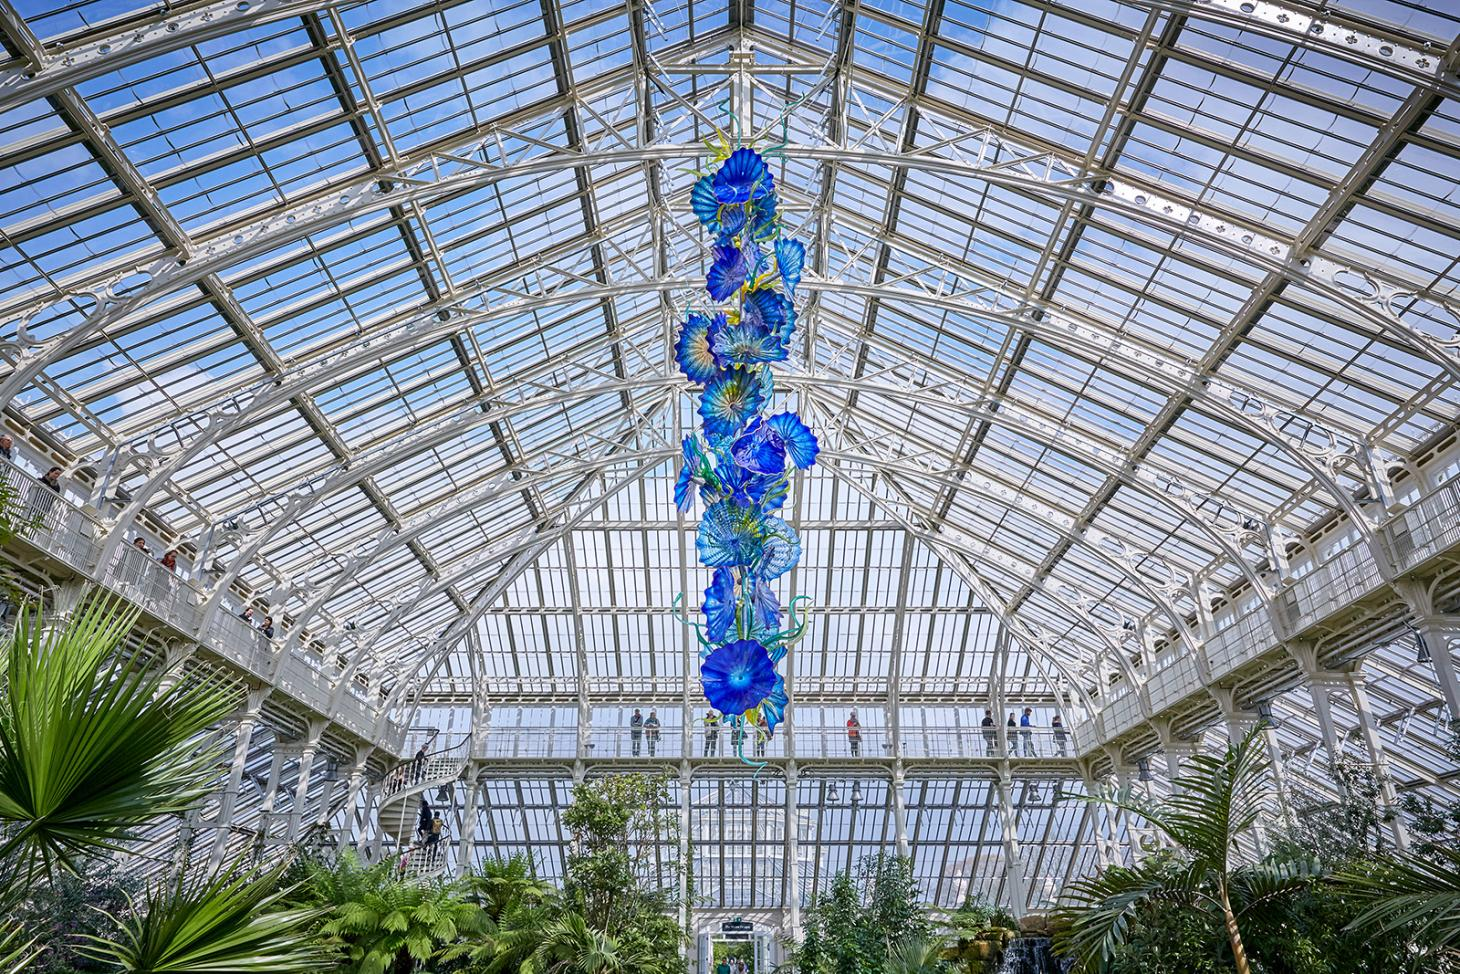 Dale Chihuly's glass sculptures are in bloom at Kew Gardens